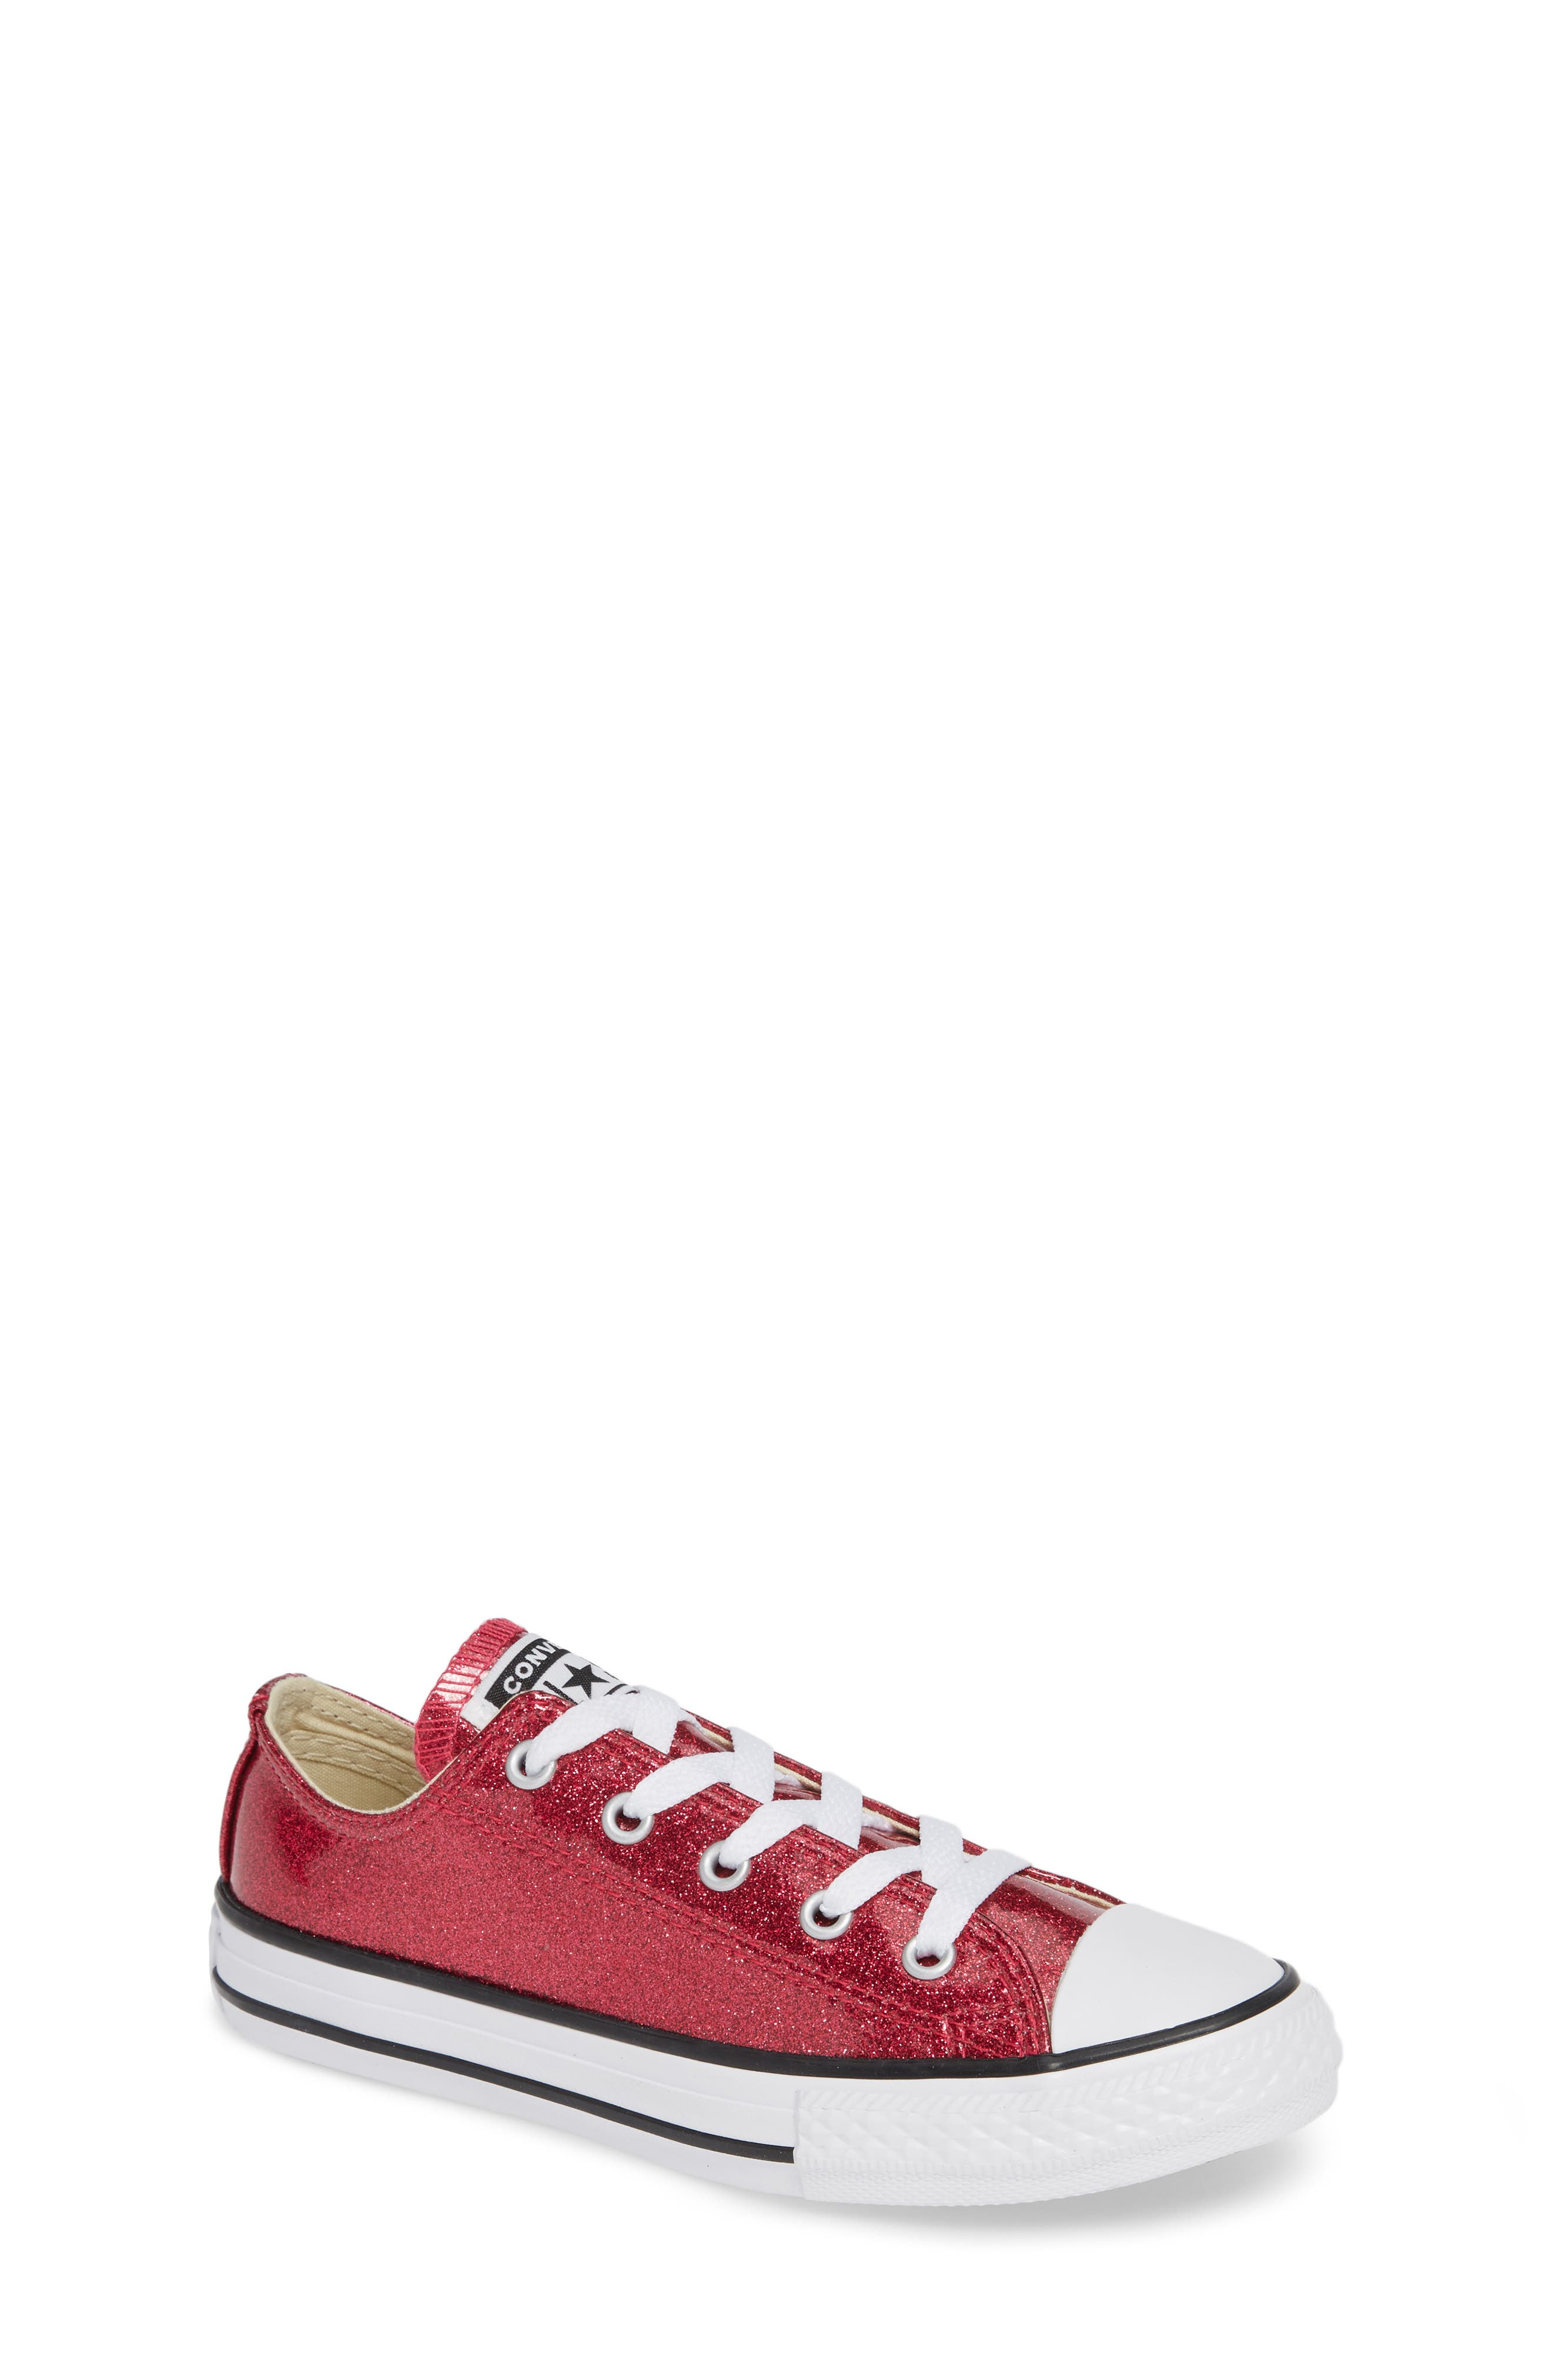 All Star<sup>®</sup> Seasonal Glitter OX Low Top Sneaker,                         Main,                         color, PINK POP